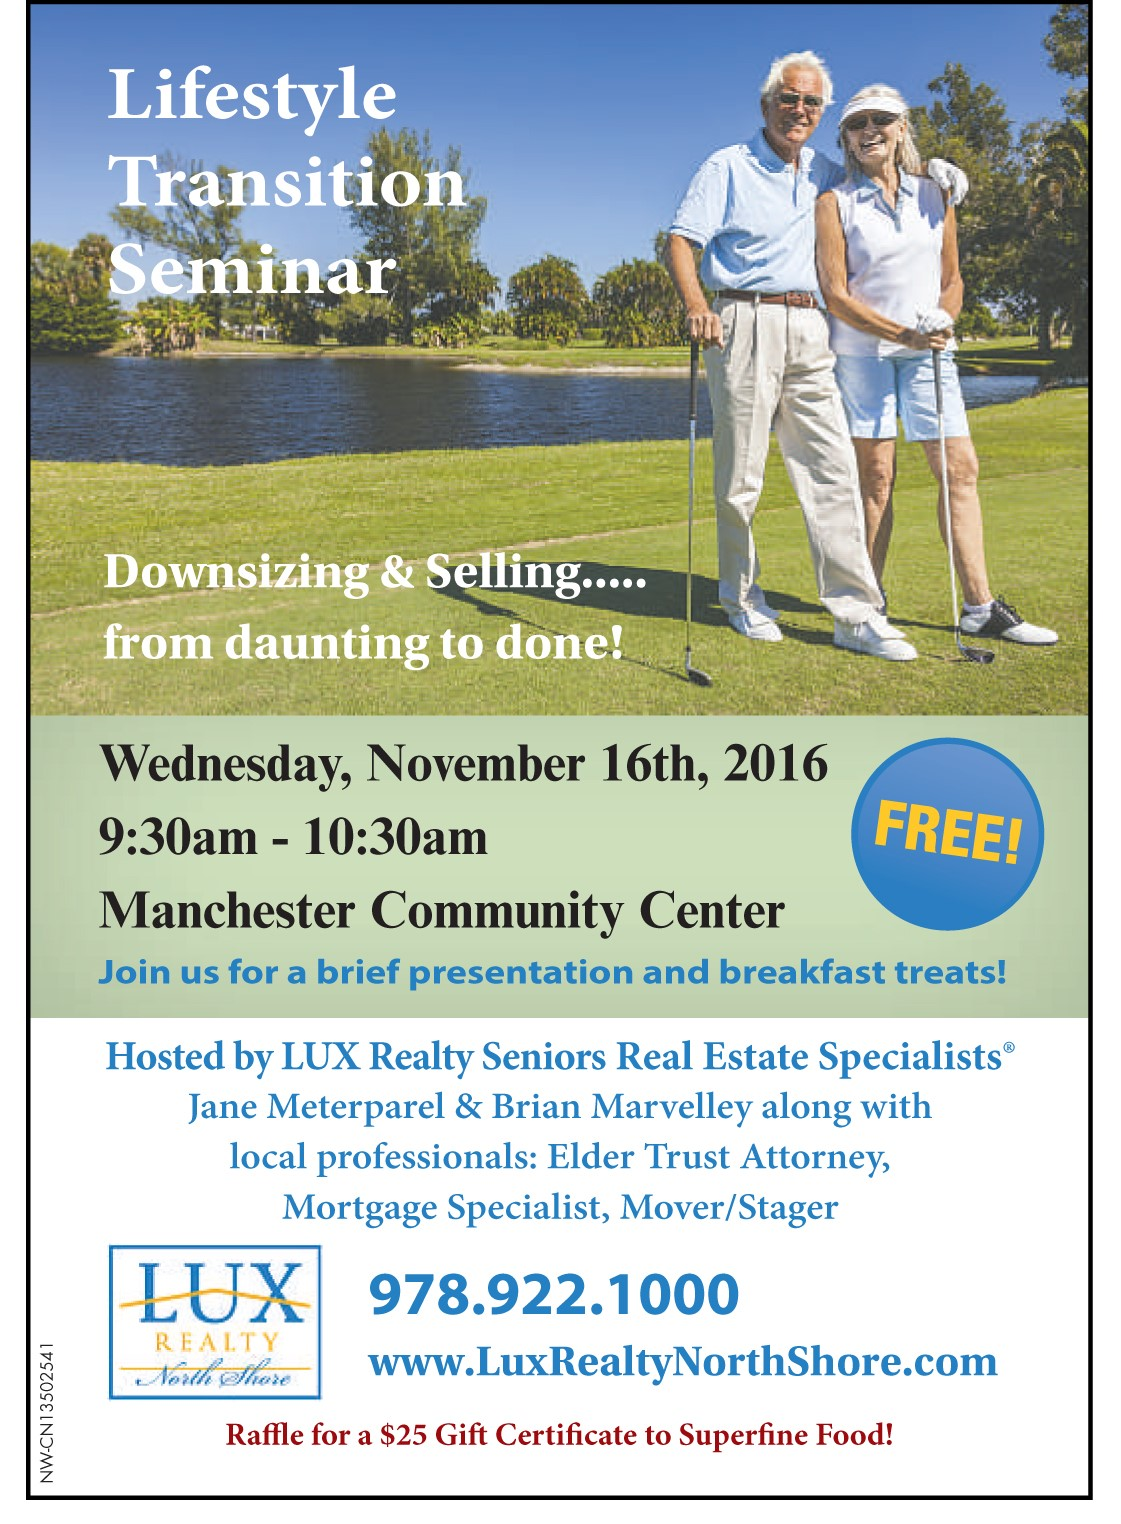 Lifestyle Transition Seminar LUX Realty North Shore